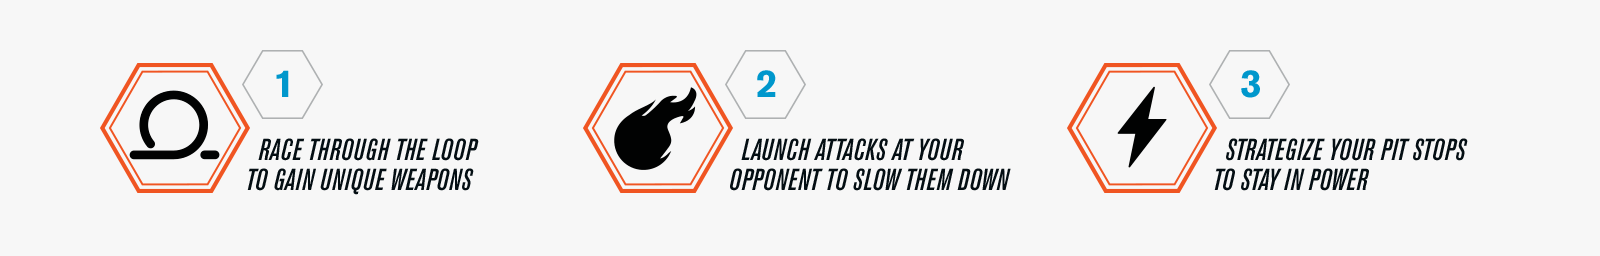 Race Through the Loop - Launch Attacks - Strategize Pit Stops